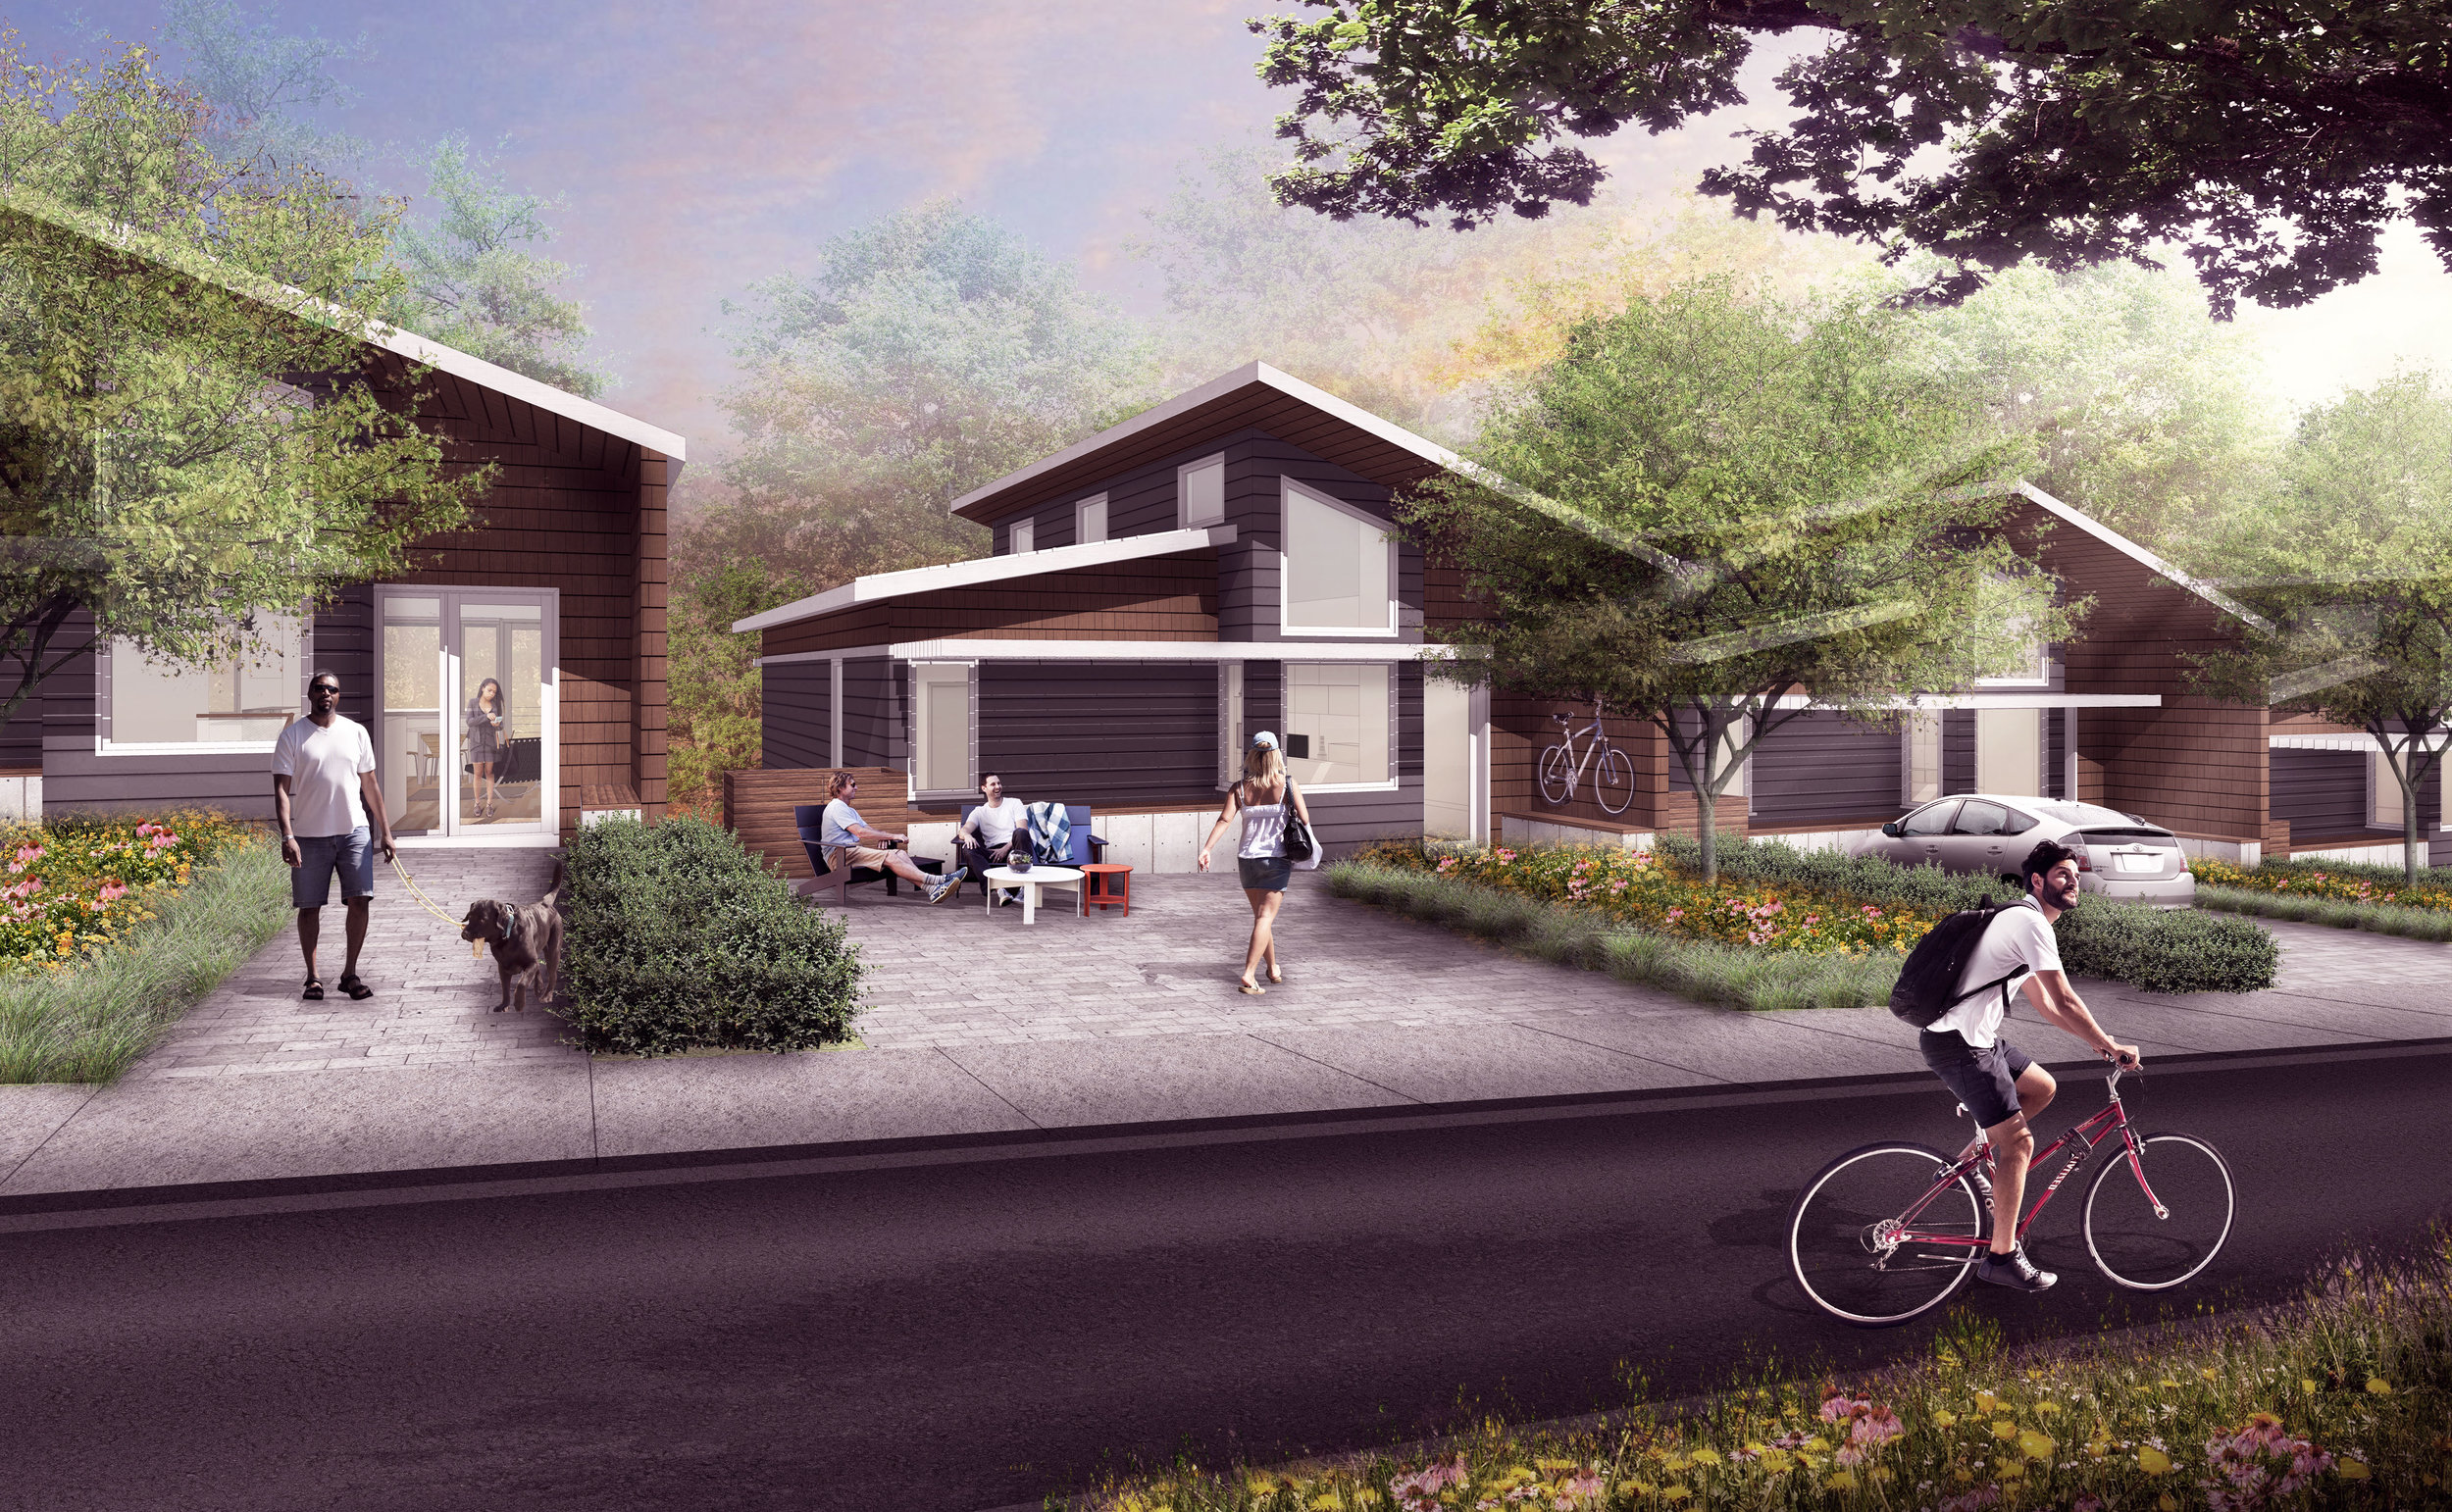 NextGen Home rendering by WM Whitaker Landscape Architects